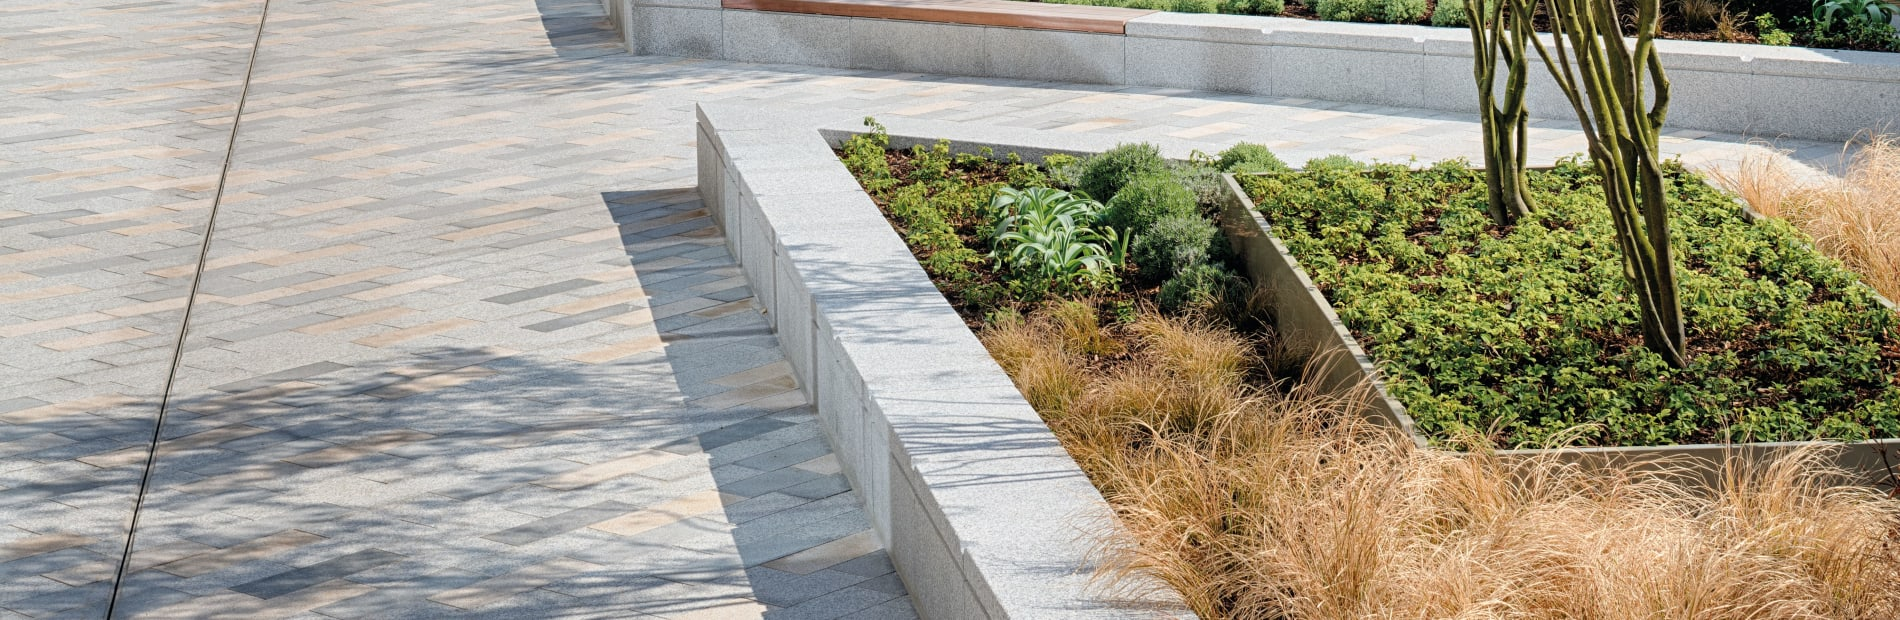 Bespoke seating and planter combination for outside business building